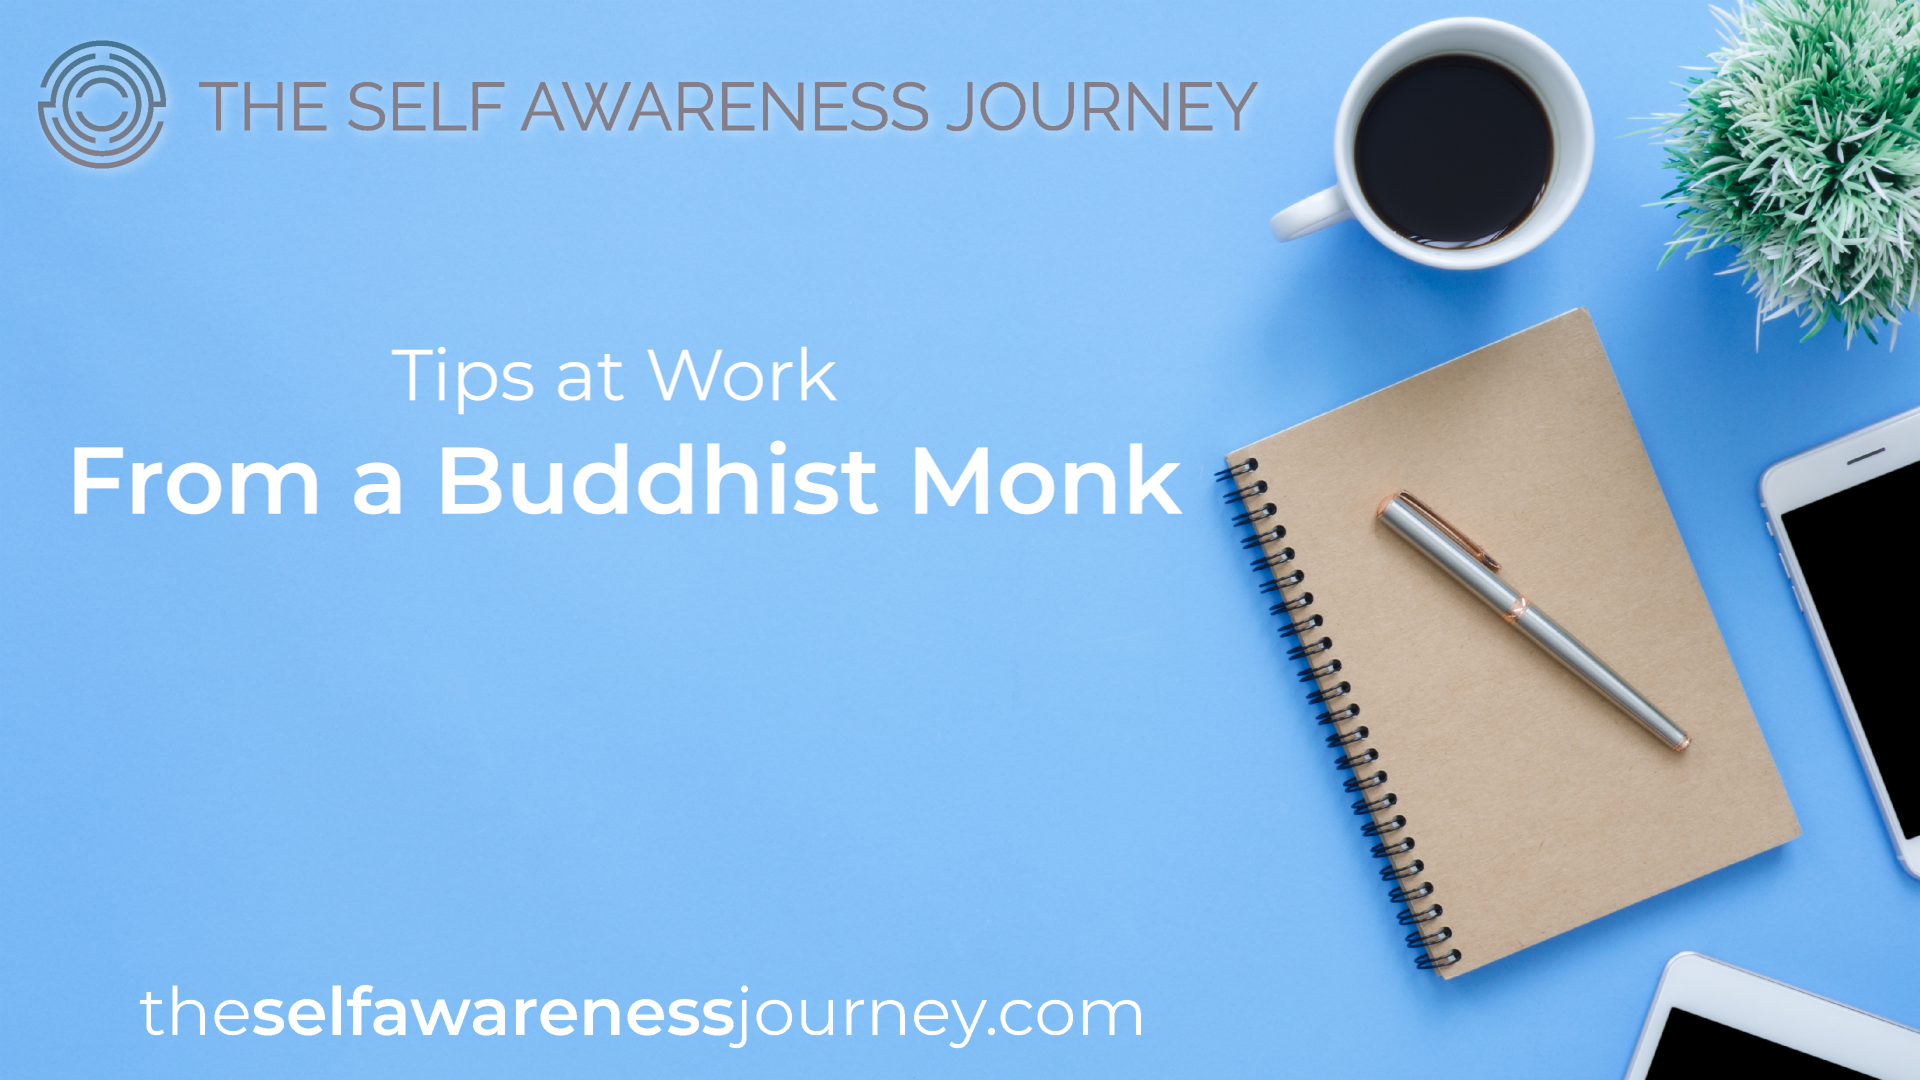 From a Buddhist Monk